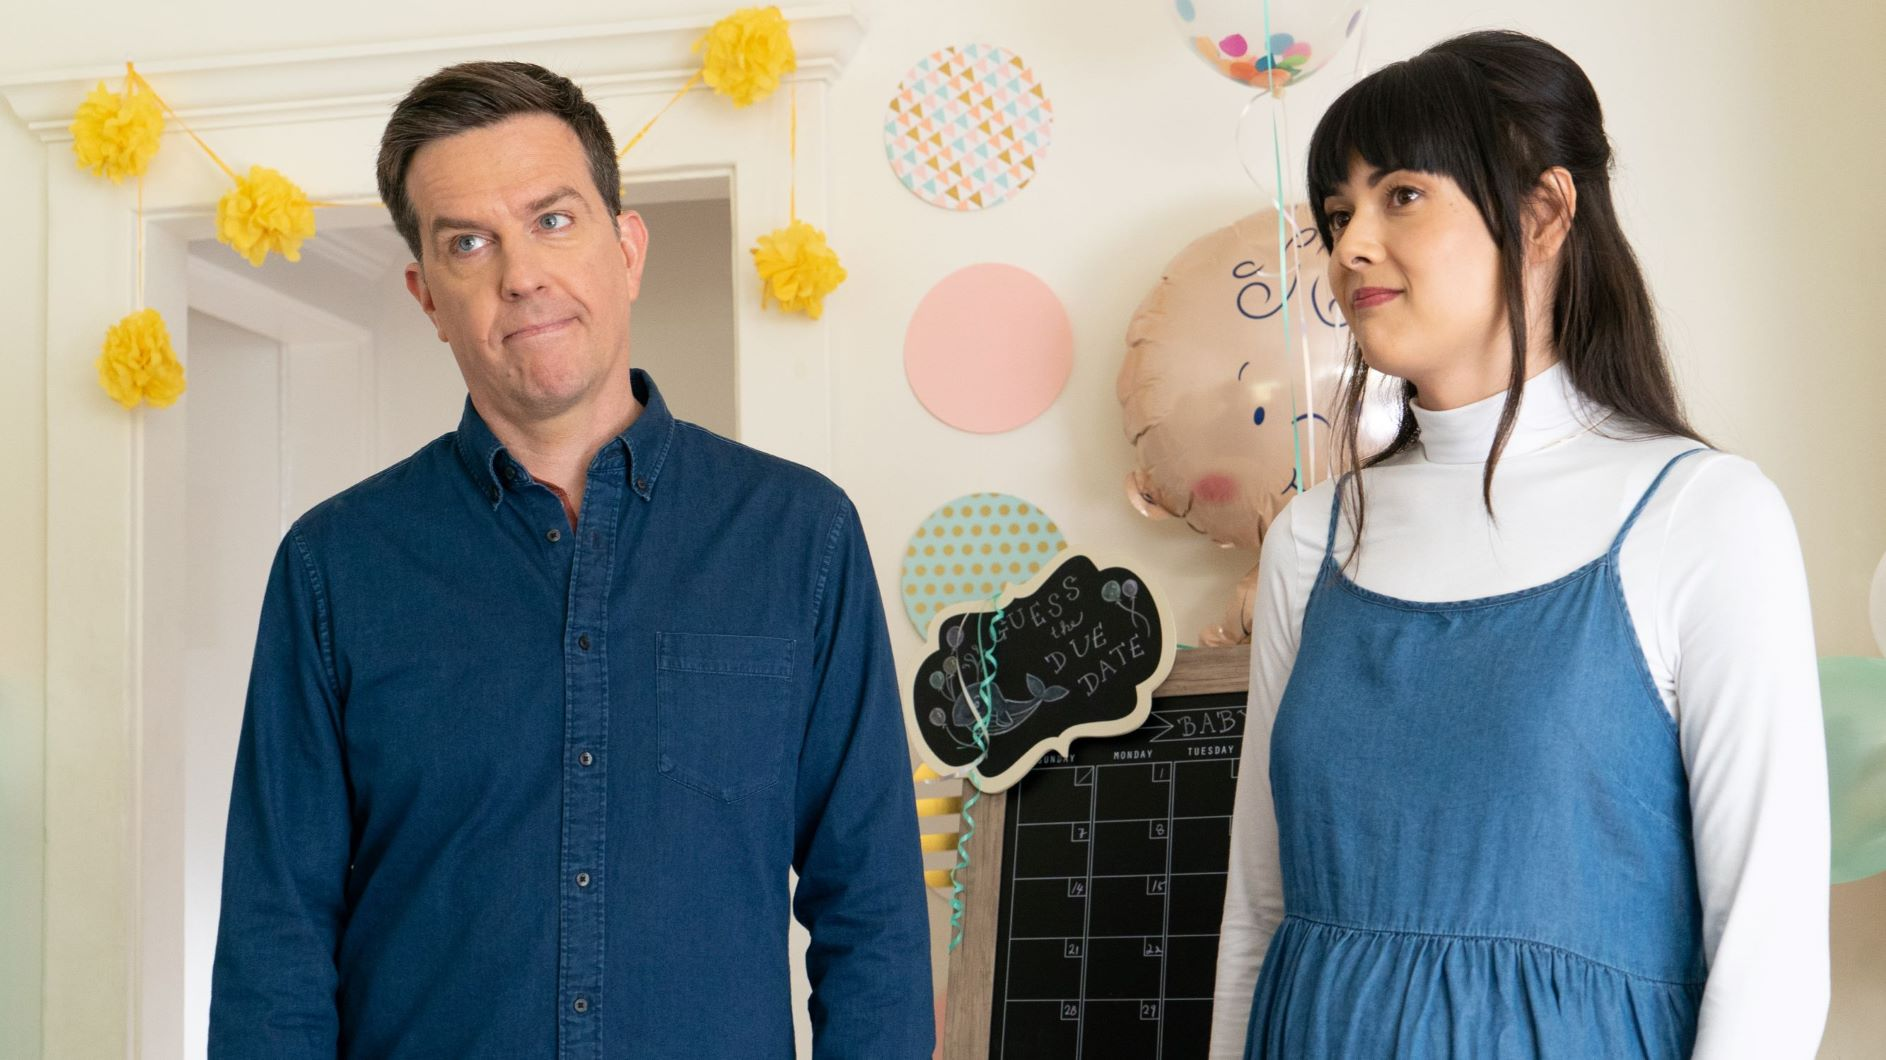 Ed Helms and Patti Harrison stand together in the movie Together Together